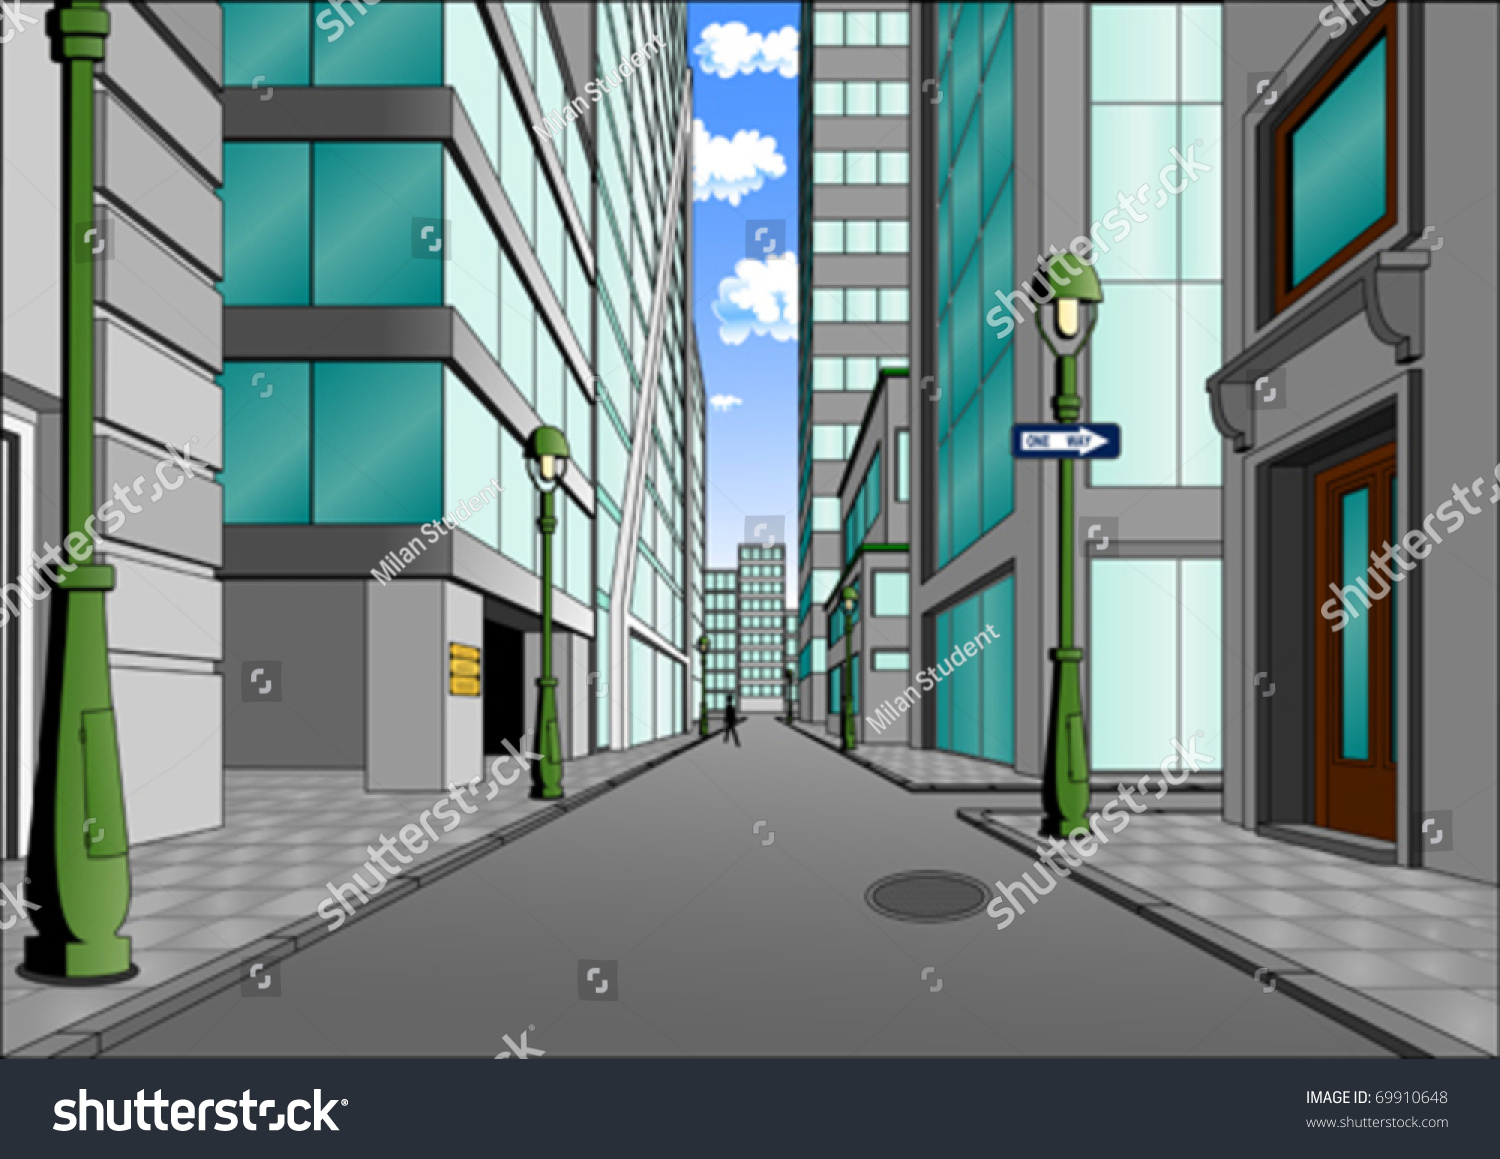 city centre clipart - photo #18